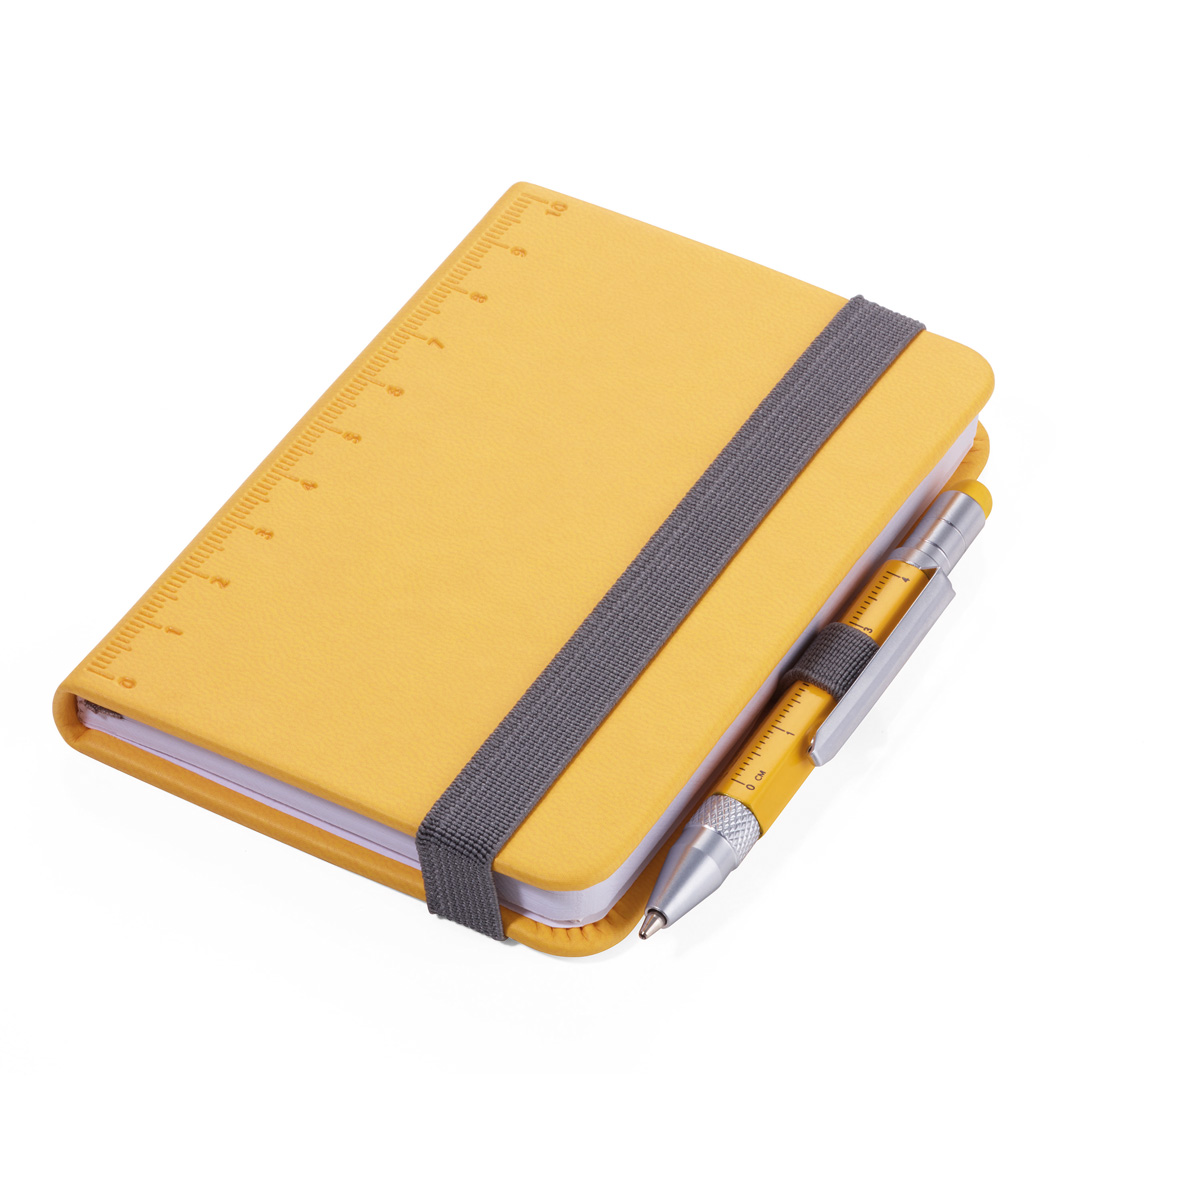 Troika Lilipad and Liliput Mini Notebook and Pen Yellow